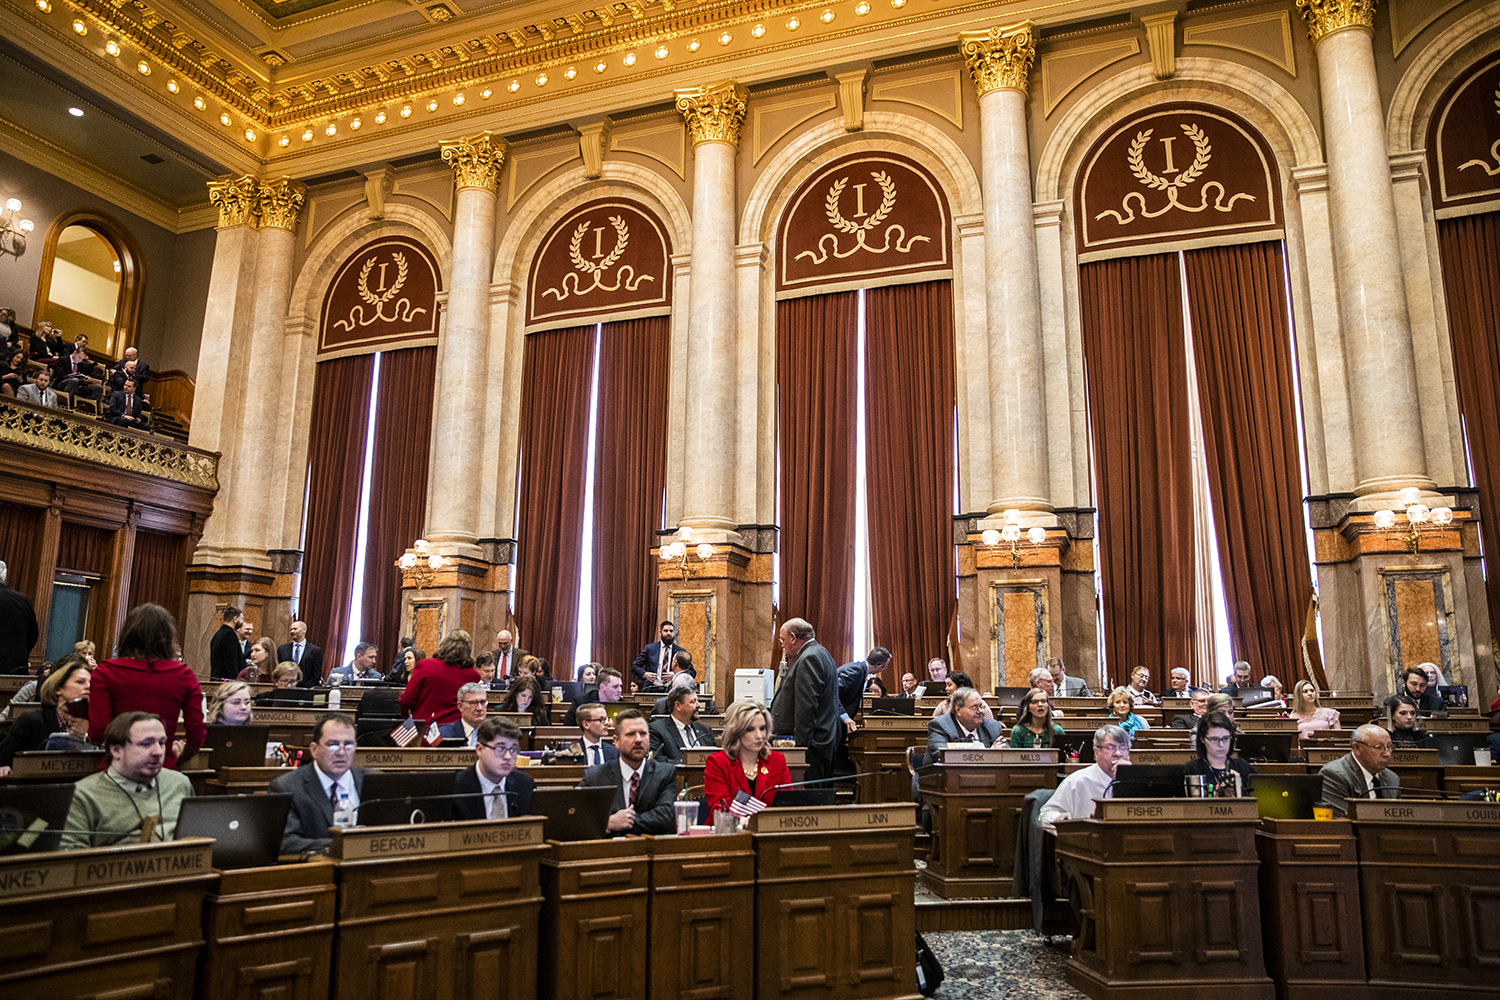 The Iowa House convenes at the Iowa State Capitol on Monday, Jan. 13, 2020. Leaders in the Iowa House of Representatives gave opening remarks to preview their priorities for the 2020 session.